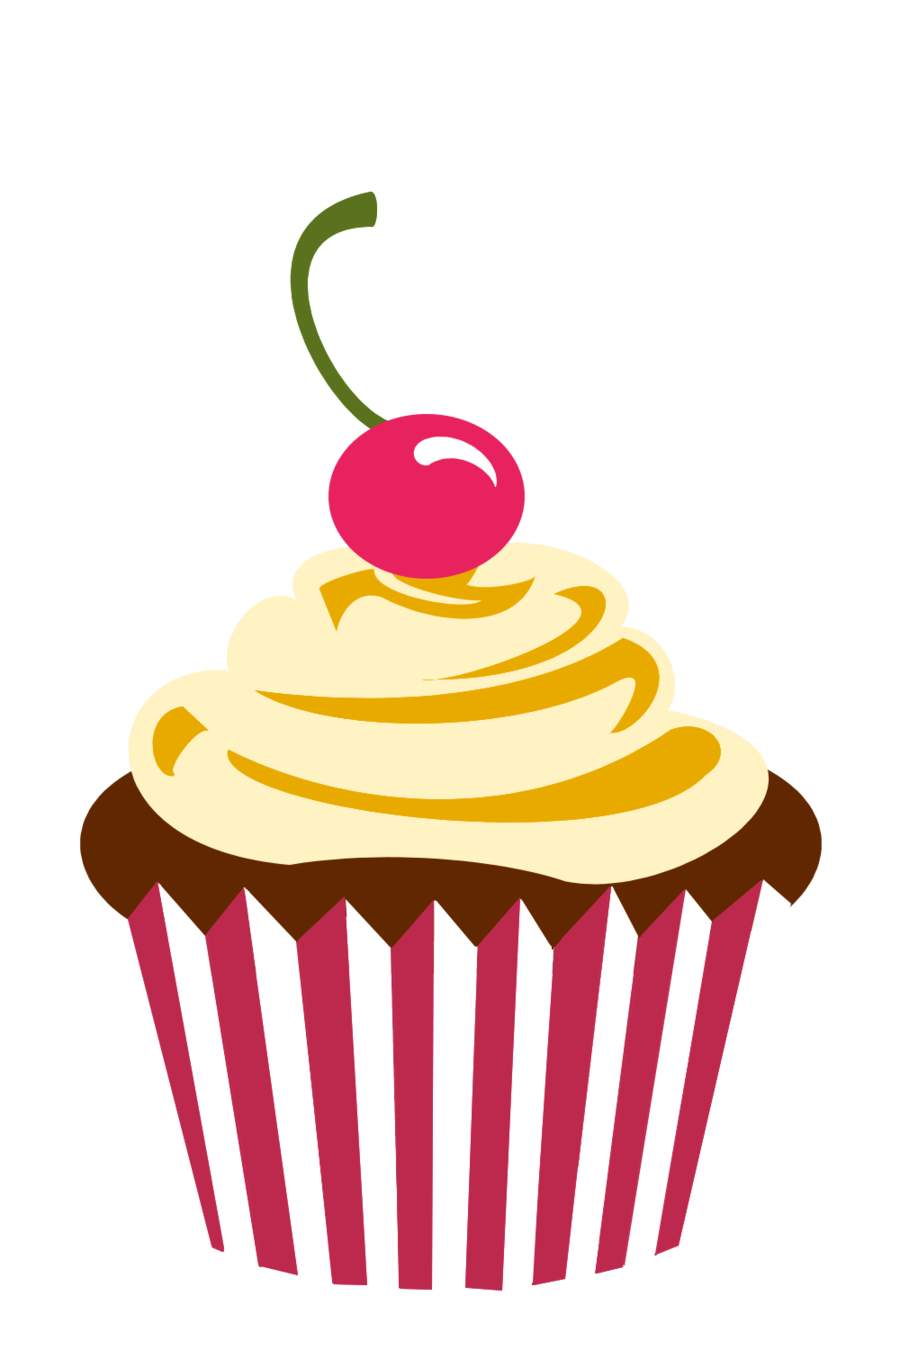 Vector cupcakes cherry top. Cupcake logo png chocolate